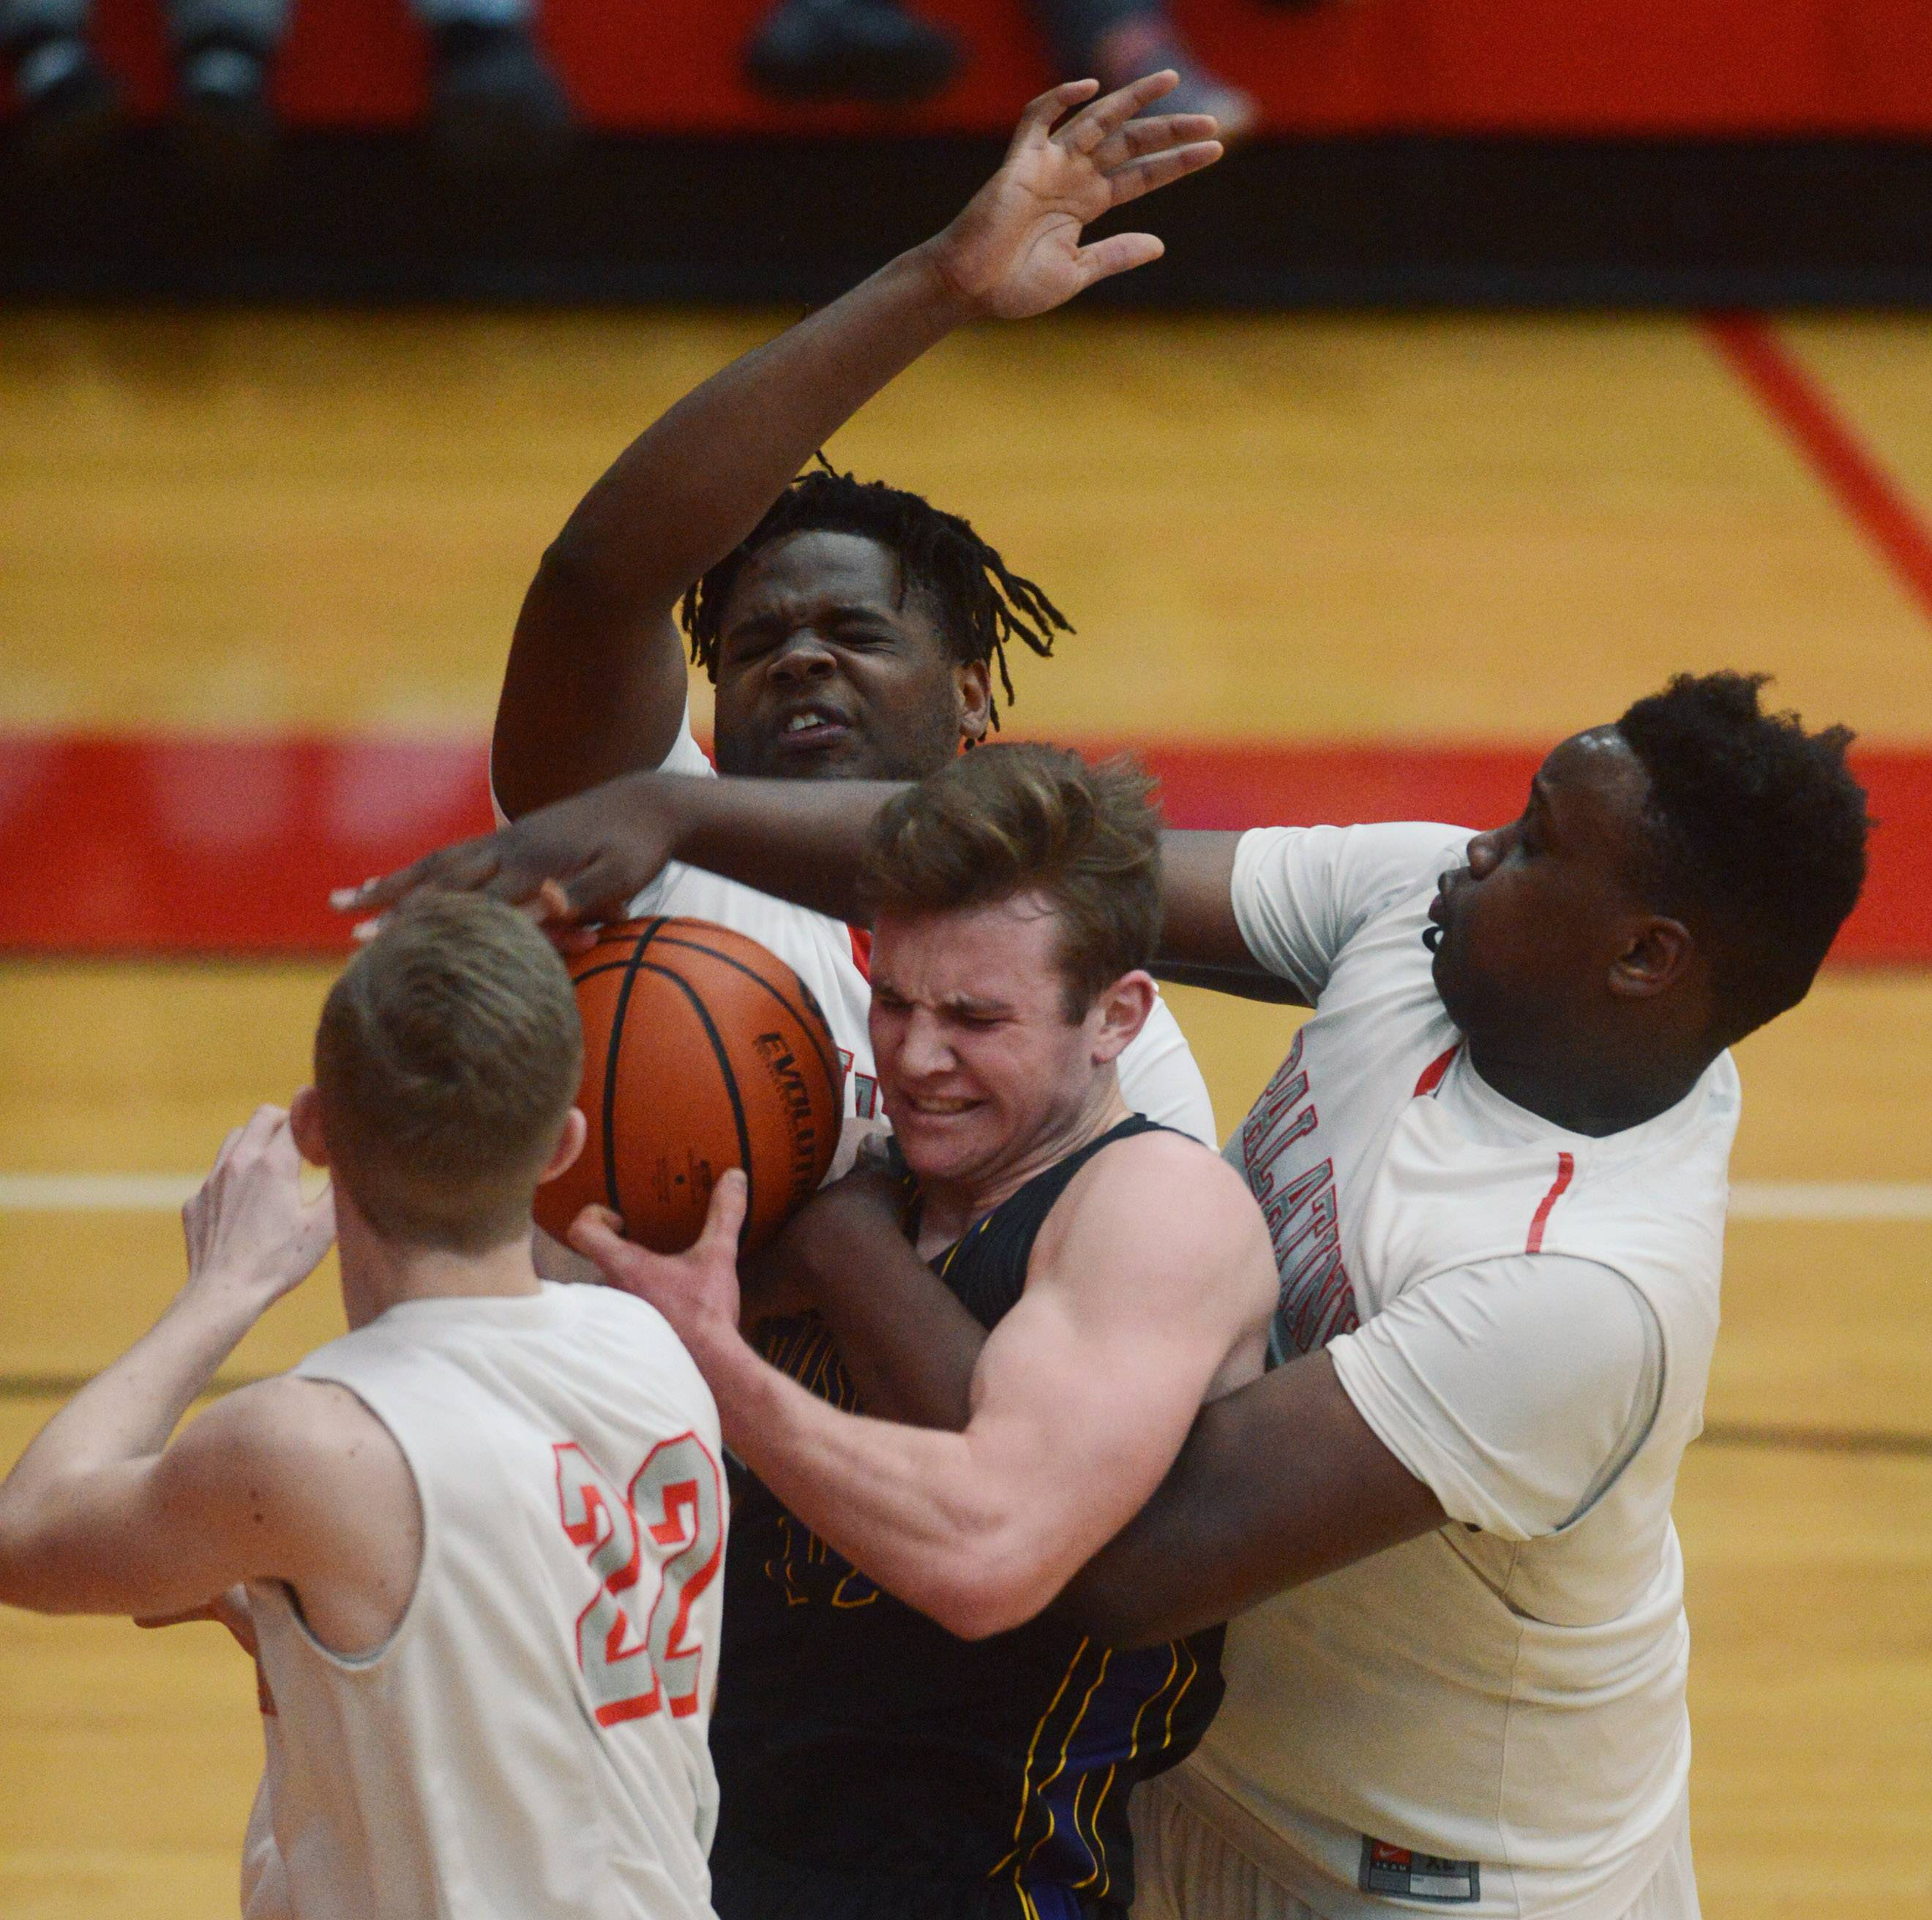 Left to right, Palatine's Ben Storm, David Balanganayi and Julian Campbell surround Rolling Meadows' Sean Nolan under the Mustangs' basket during Tuesday's game at Palatine.